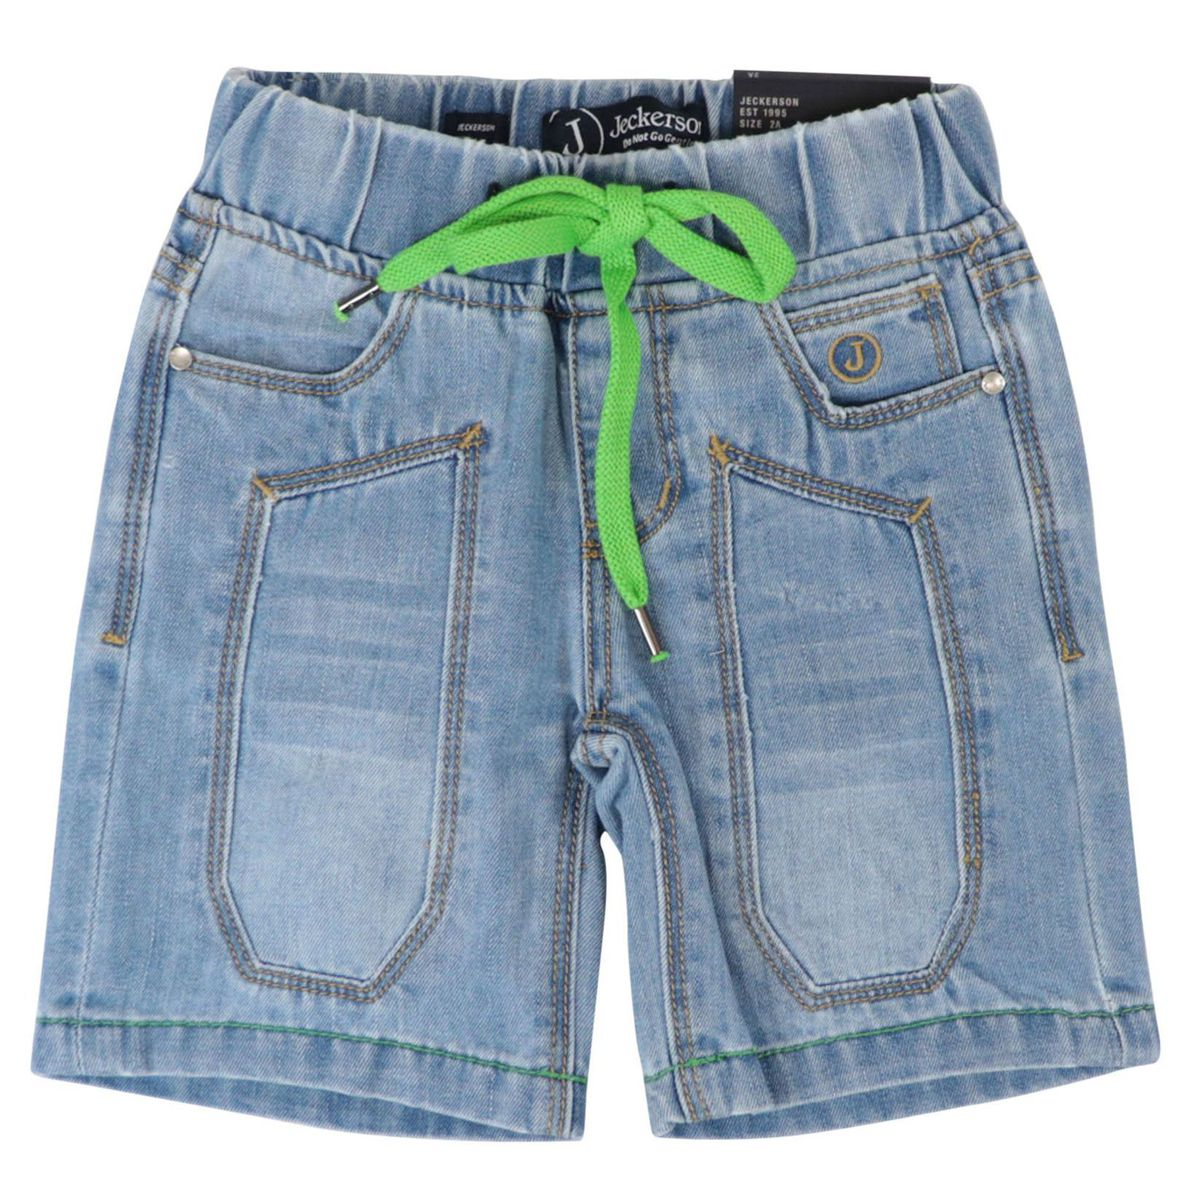 Denim bermuda with patch and neon lace Denim Jeckerson